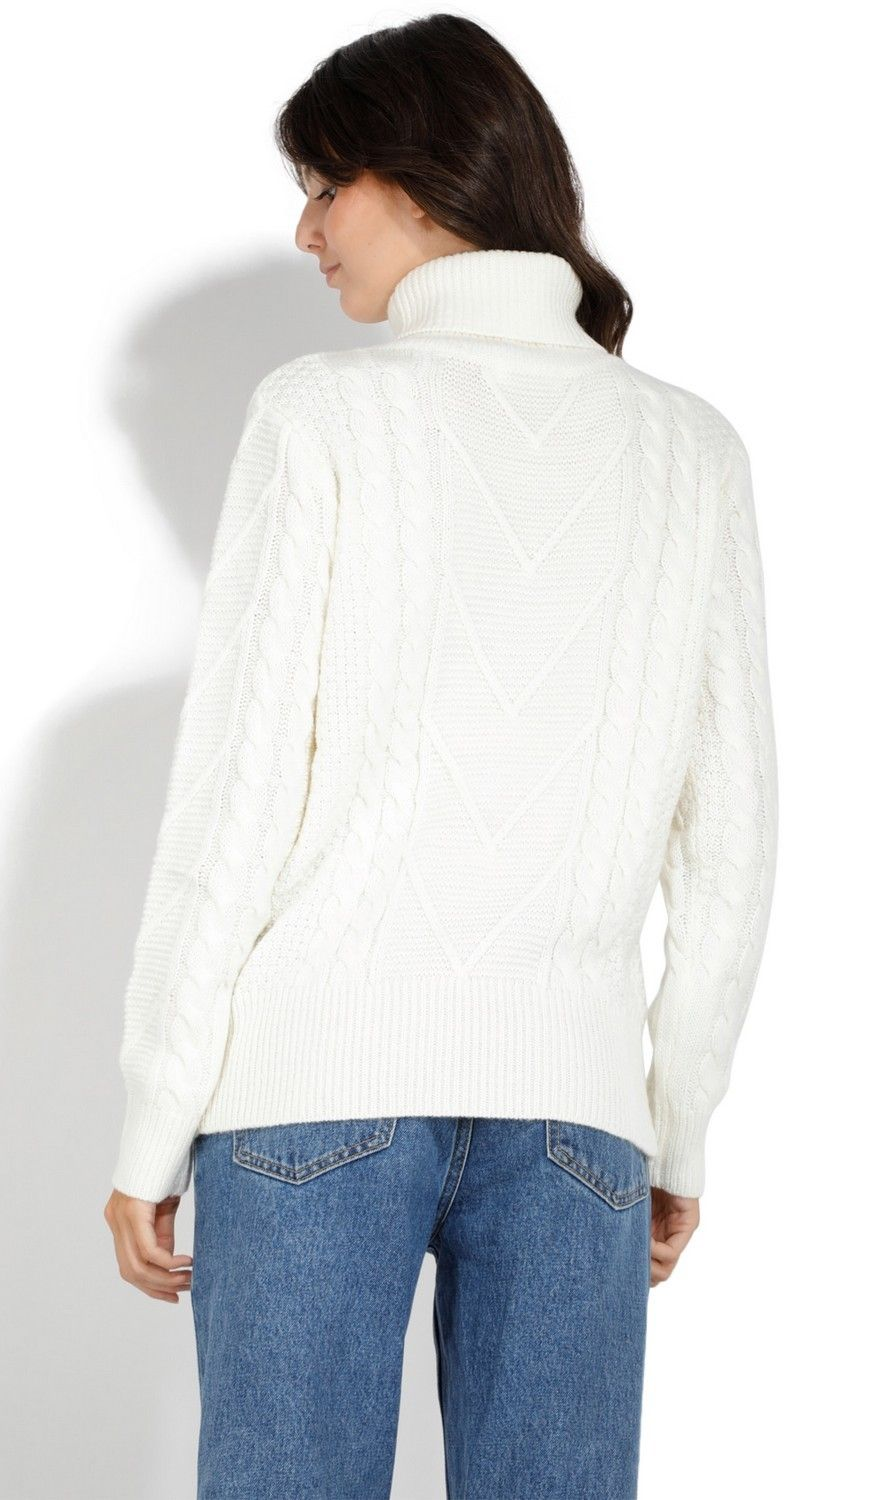 Assuili Roll Neck Twisted Yarn Sweater in Natural